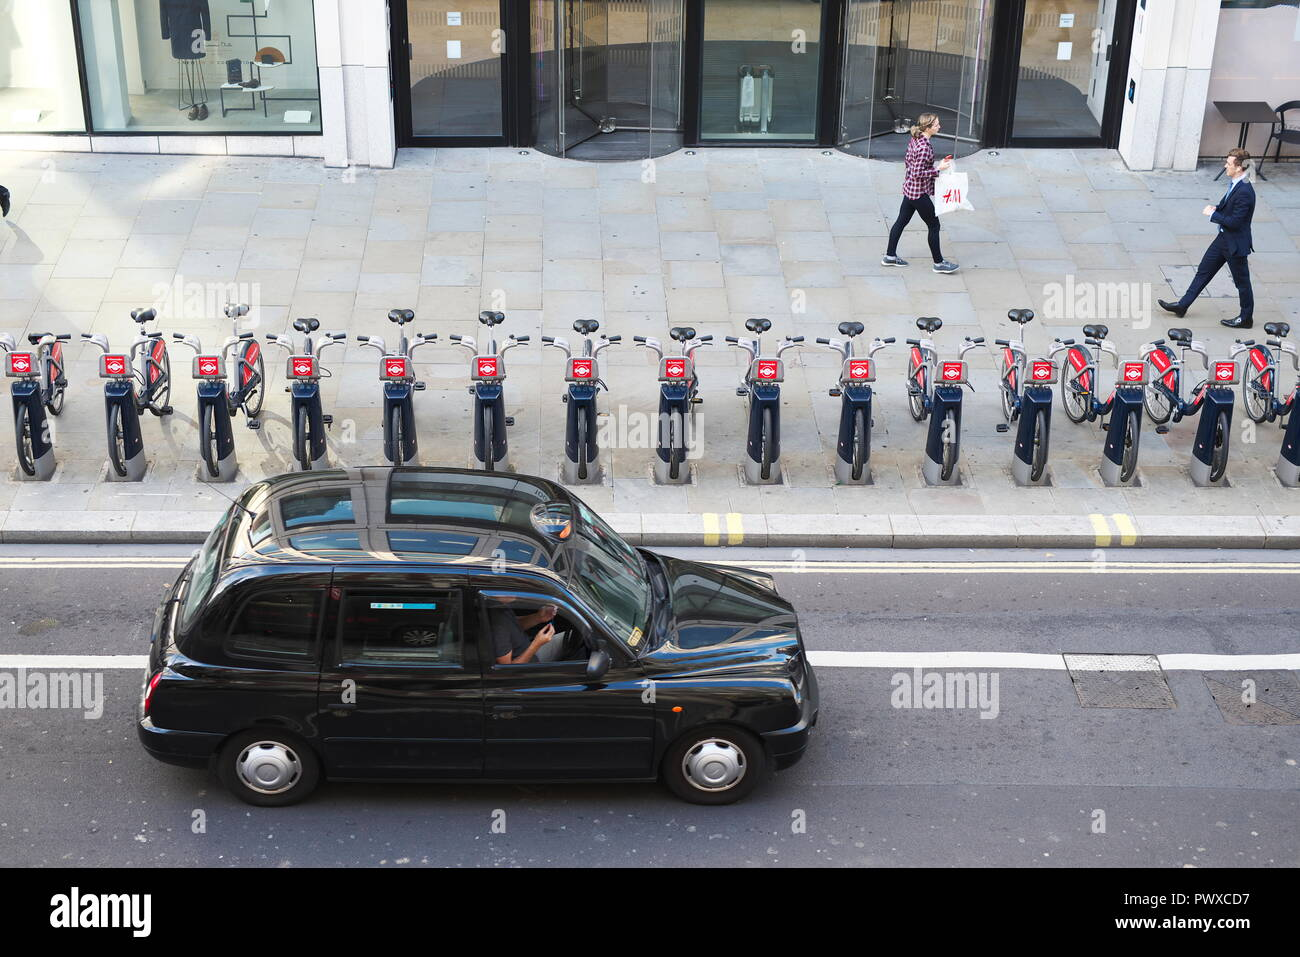 drone aerial photos of london black cab travels along a major A road in the city of London, with TFL boris Bikes/rent bikes racked up outside offices Stock Photo